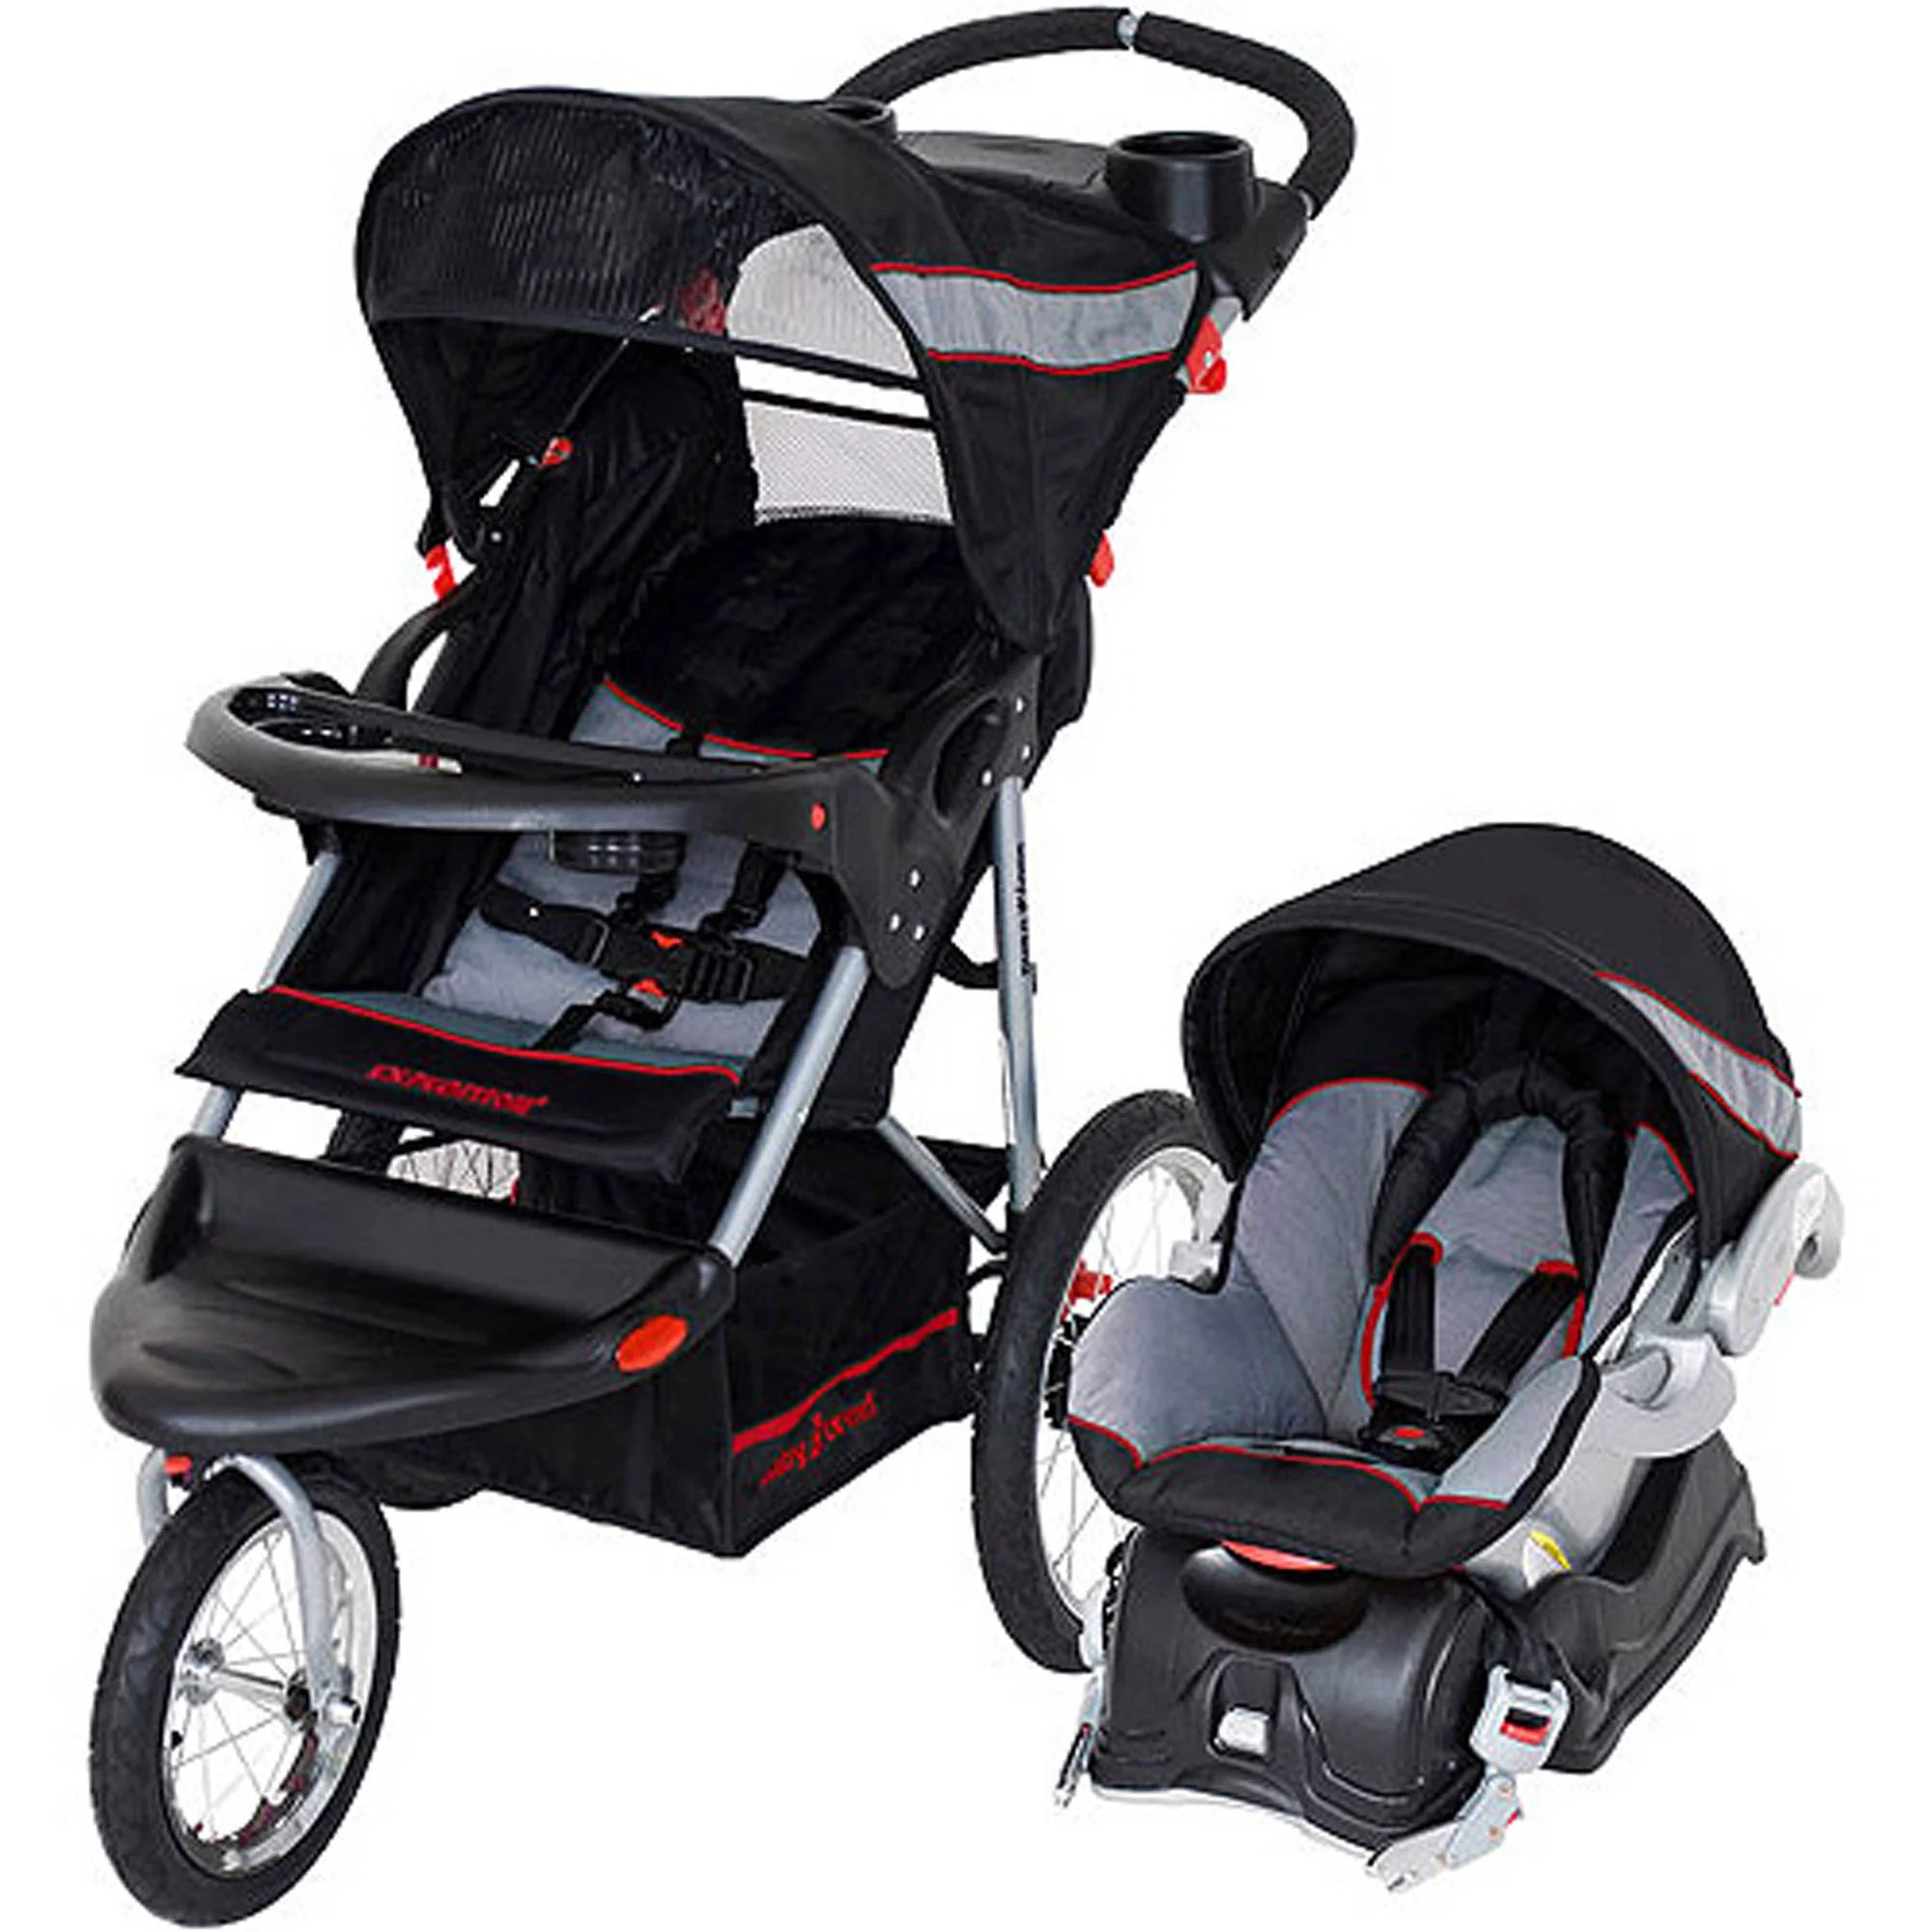 Car Seat Stroller Travel System Reviews Details About Baby Trend Expedition Jogger Travel System